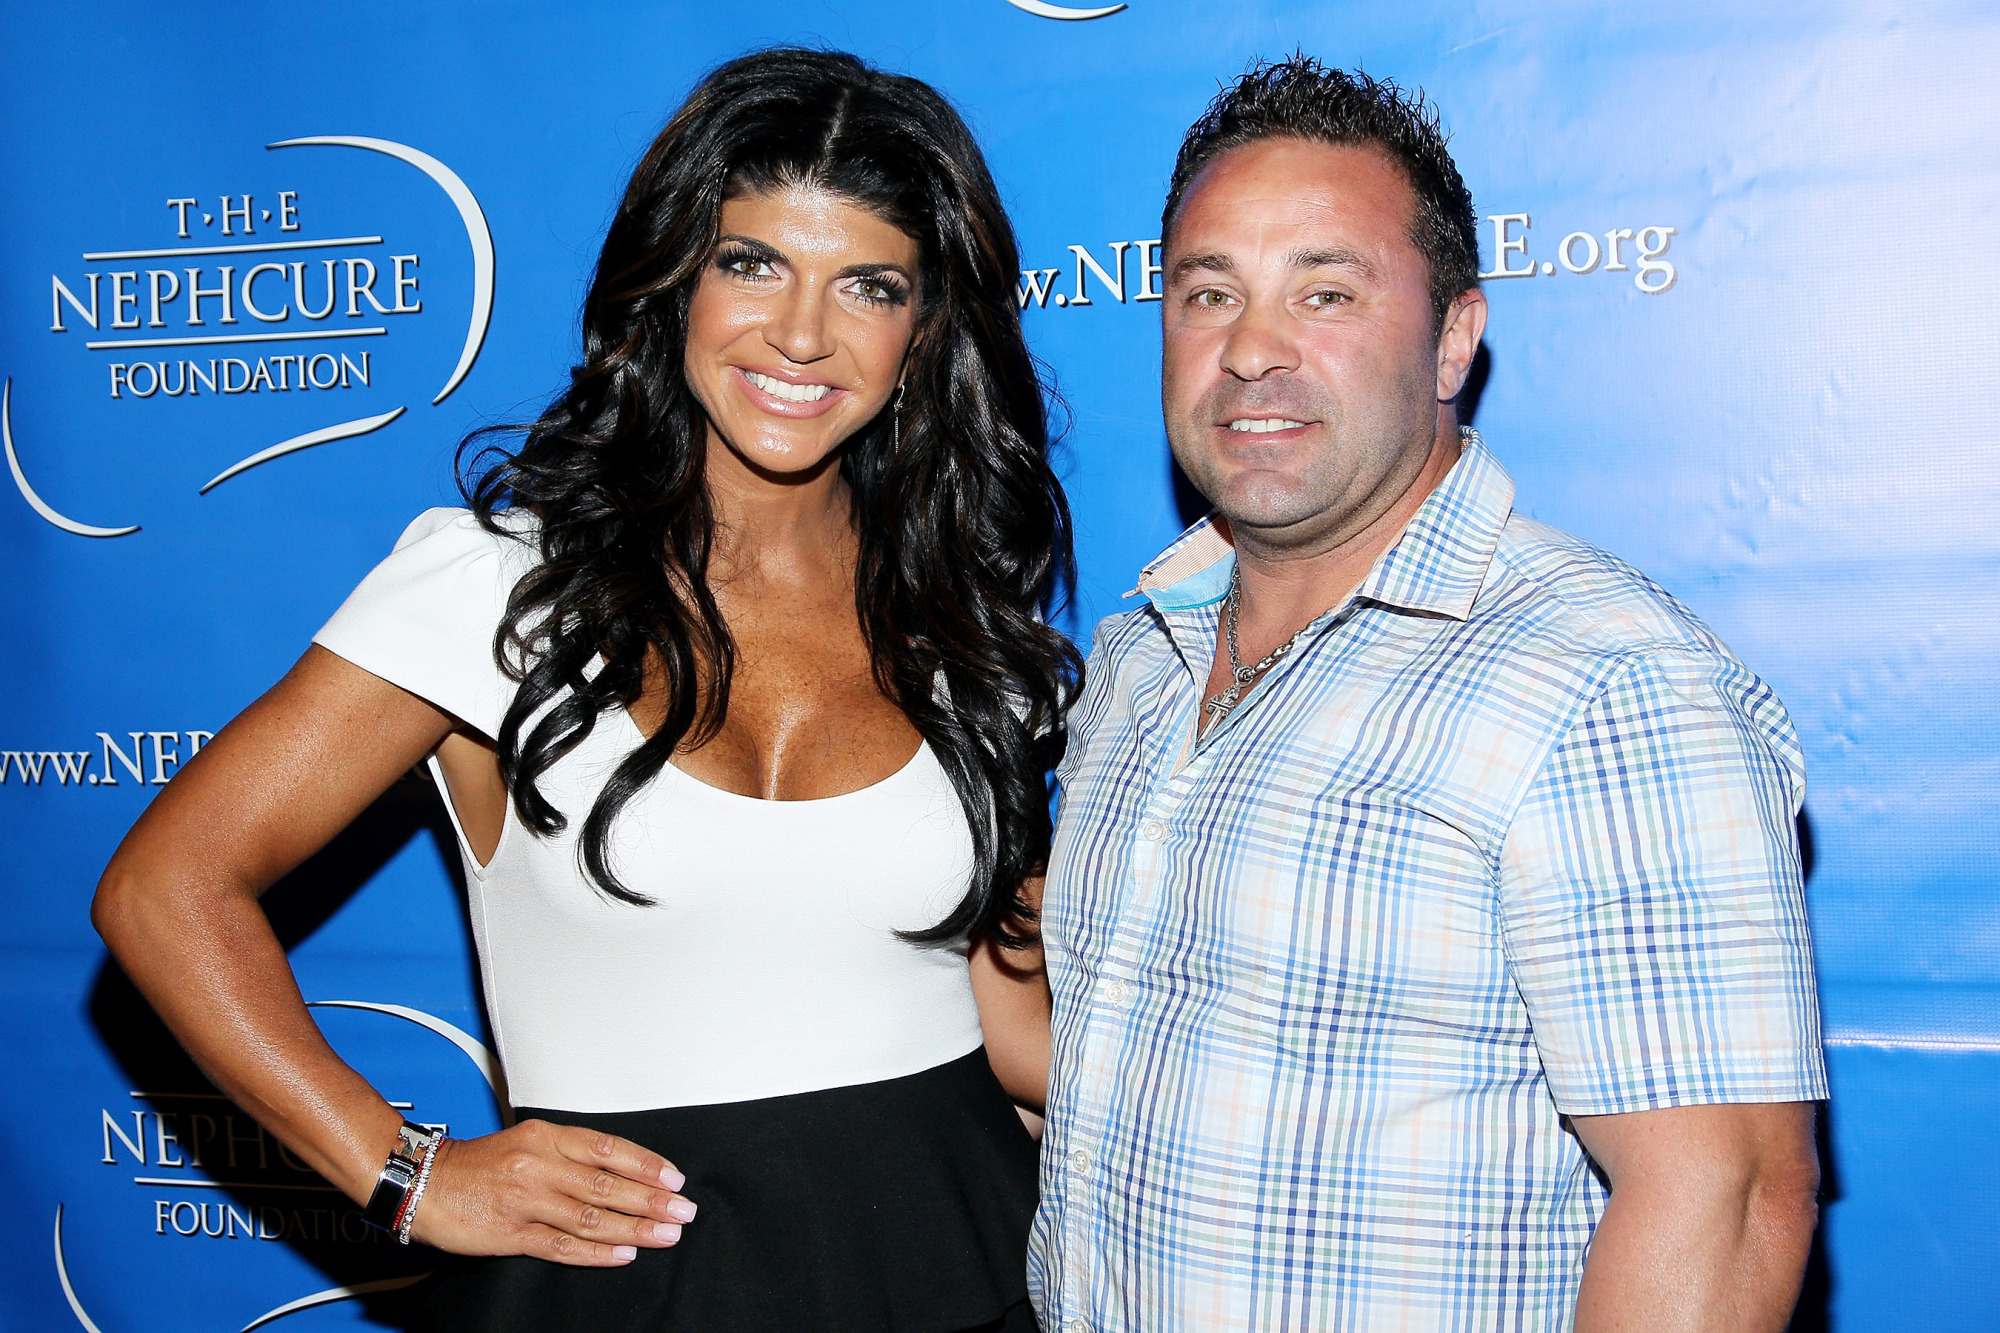 Real Housewives' Joe and Teresa Giudice may split